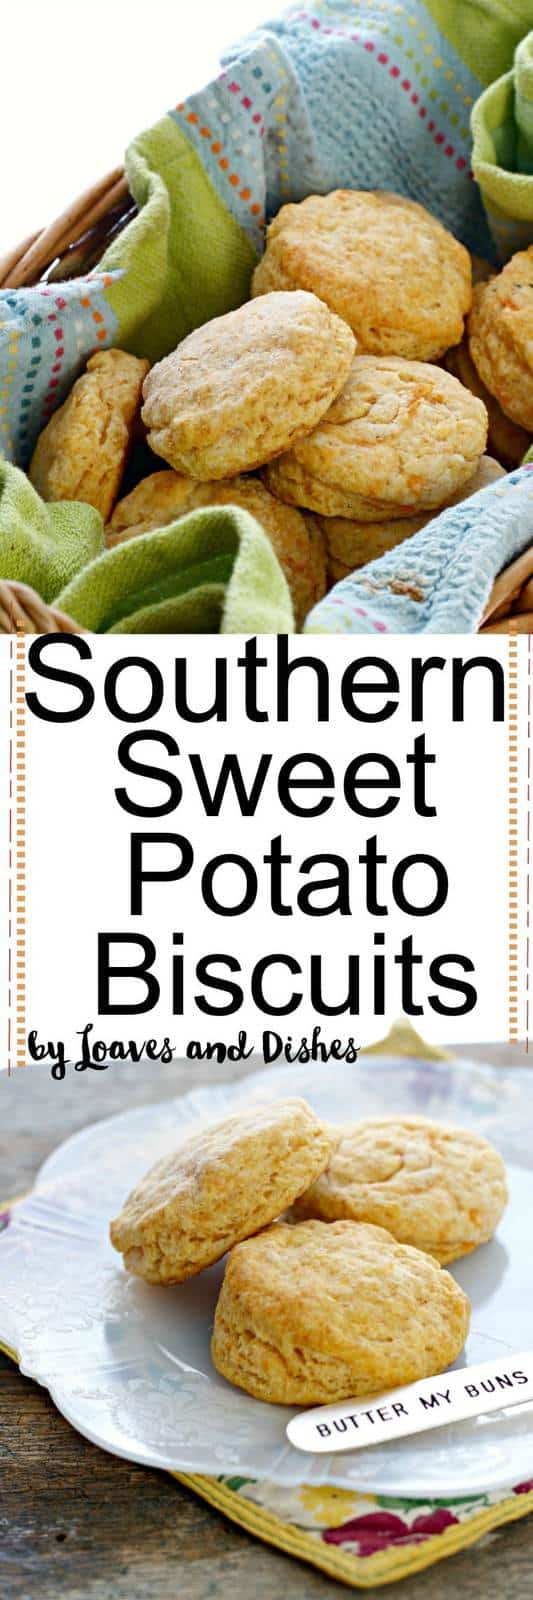 These delicious sweet little Southern Sweet Potato Biscuits are perfect for guests, parties or just yourself! Southern, old fashioned, easy, simple, healthy, like the pioneer woman or Paula Deen would make